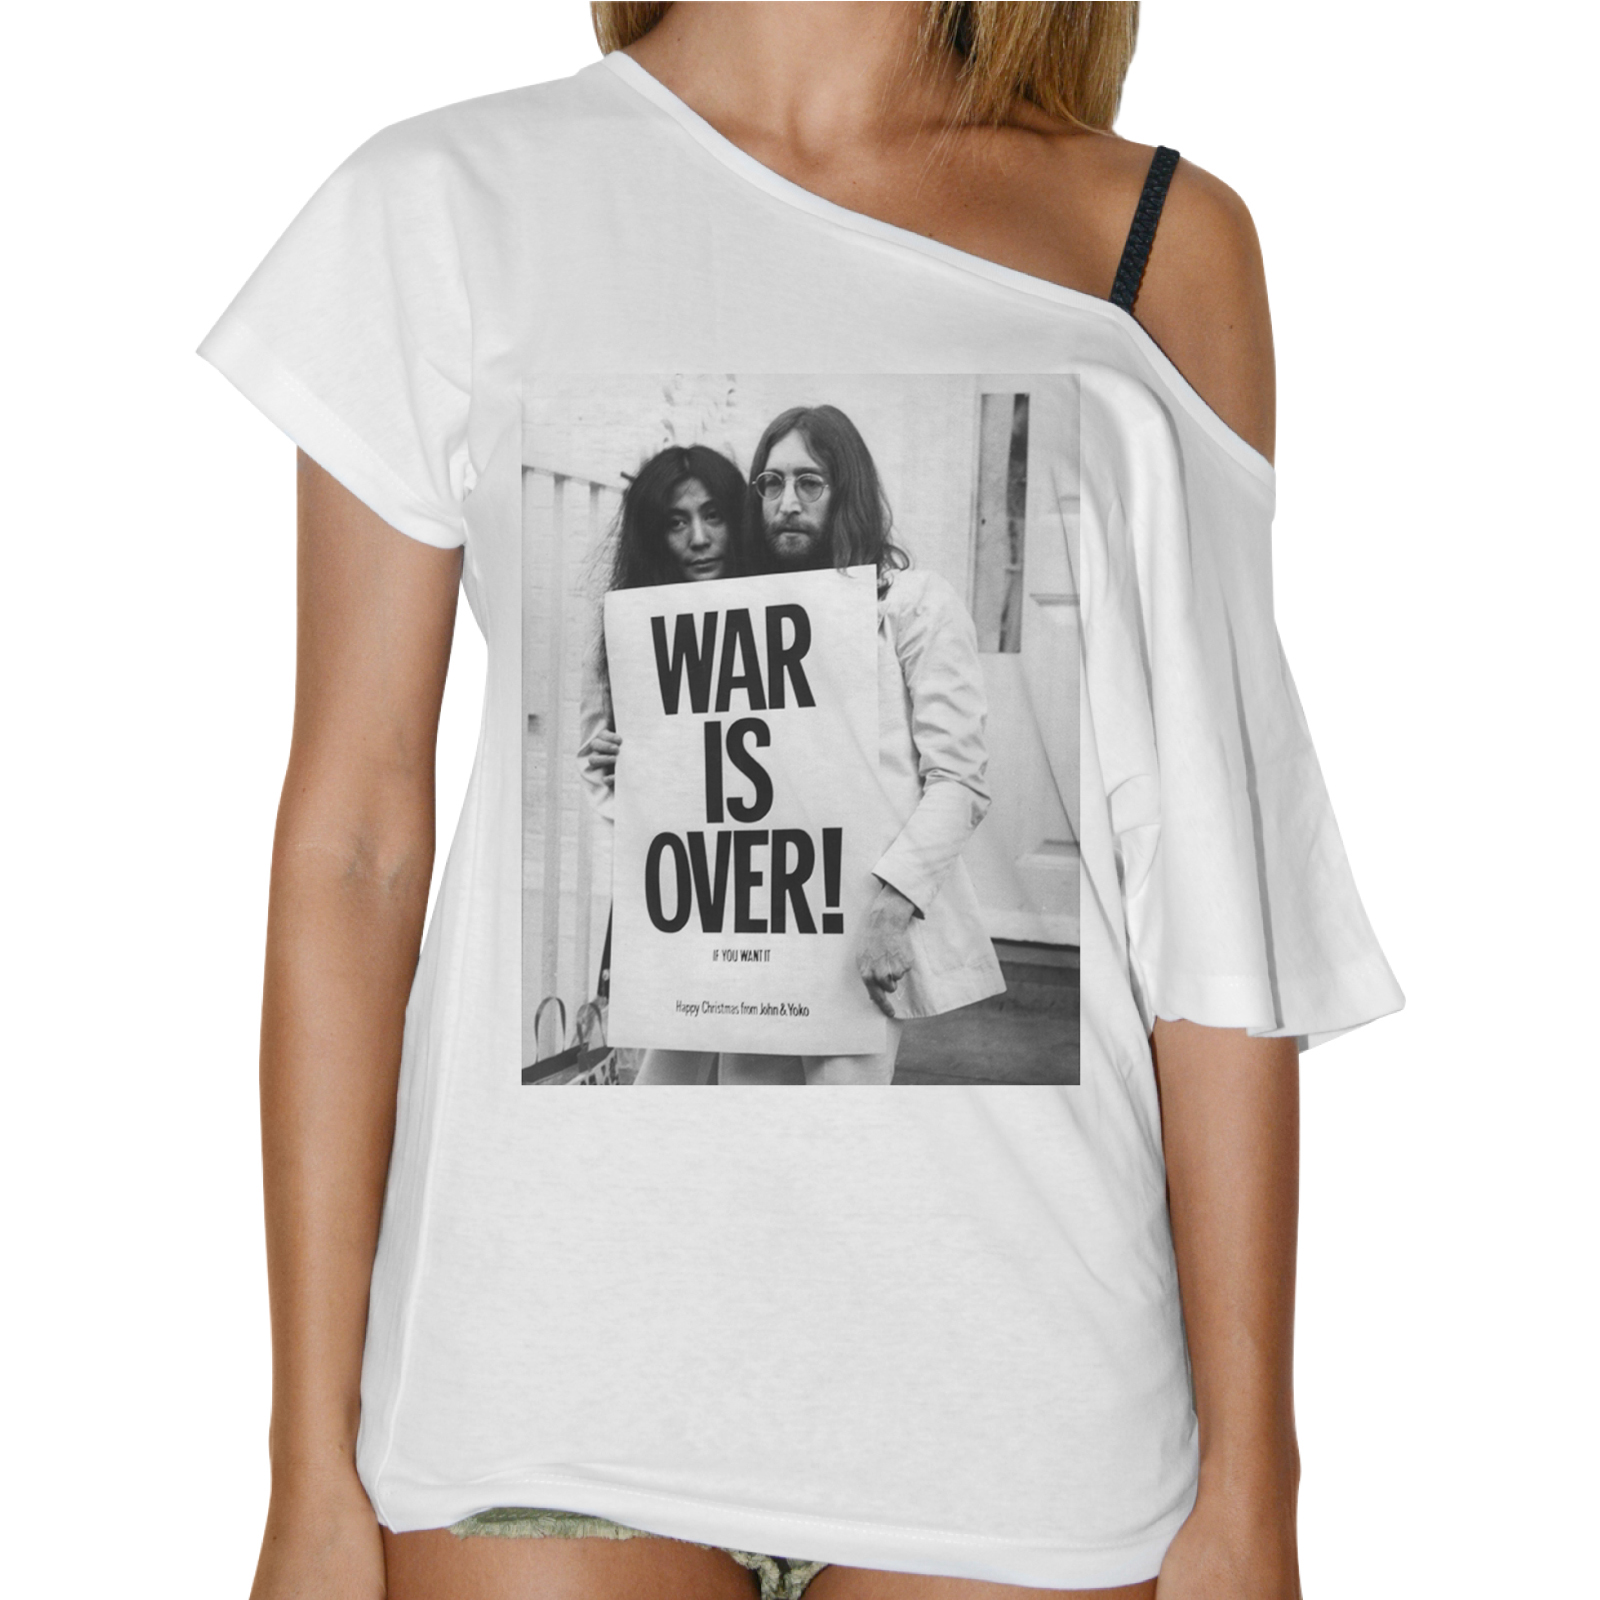 T-Shirt Donna Collo Barca WAR IS OVER 1